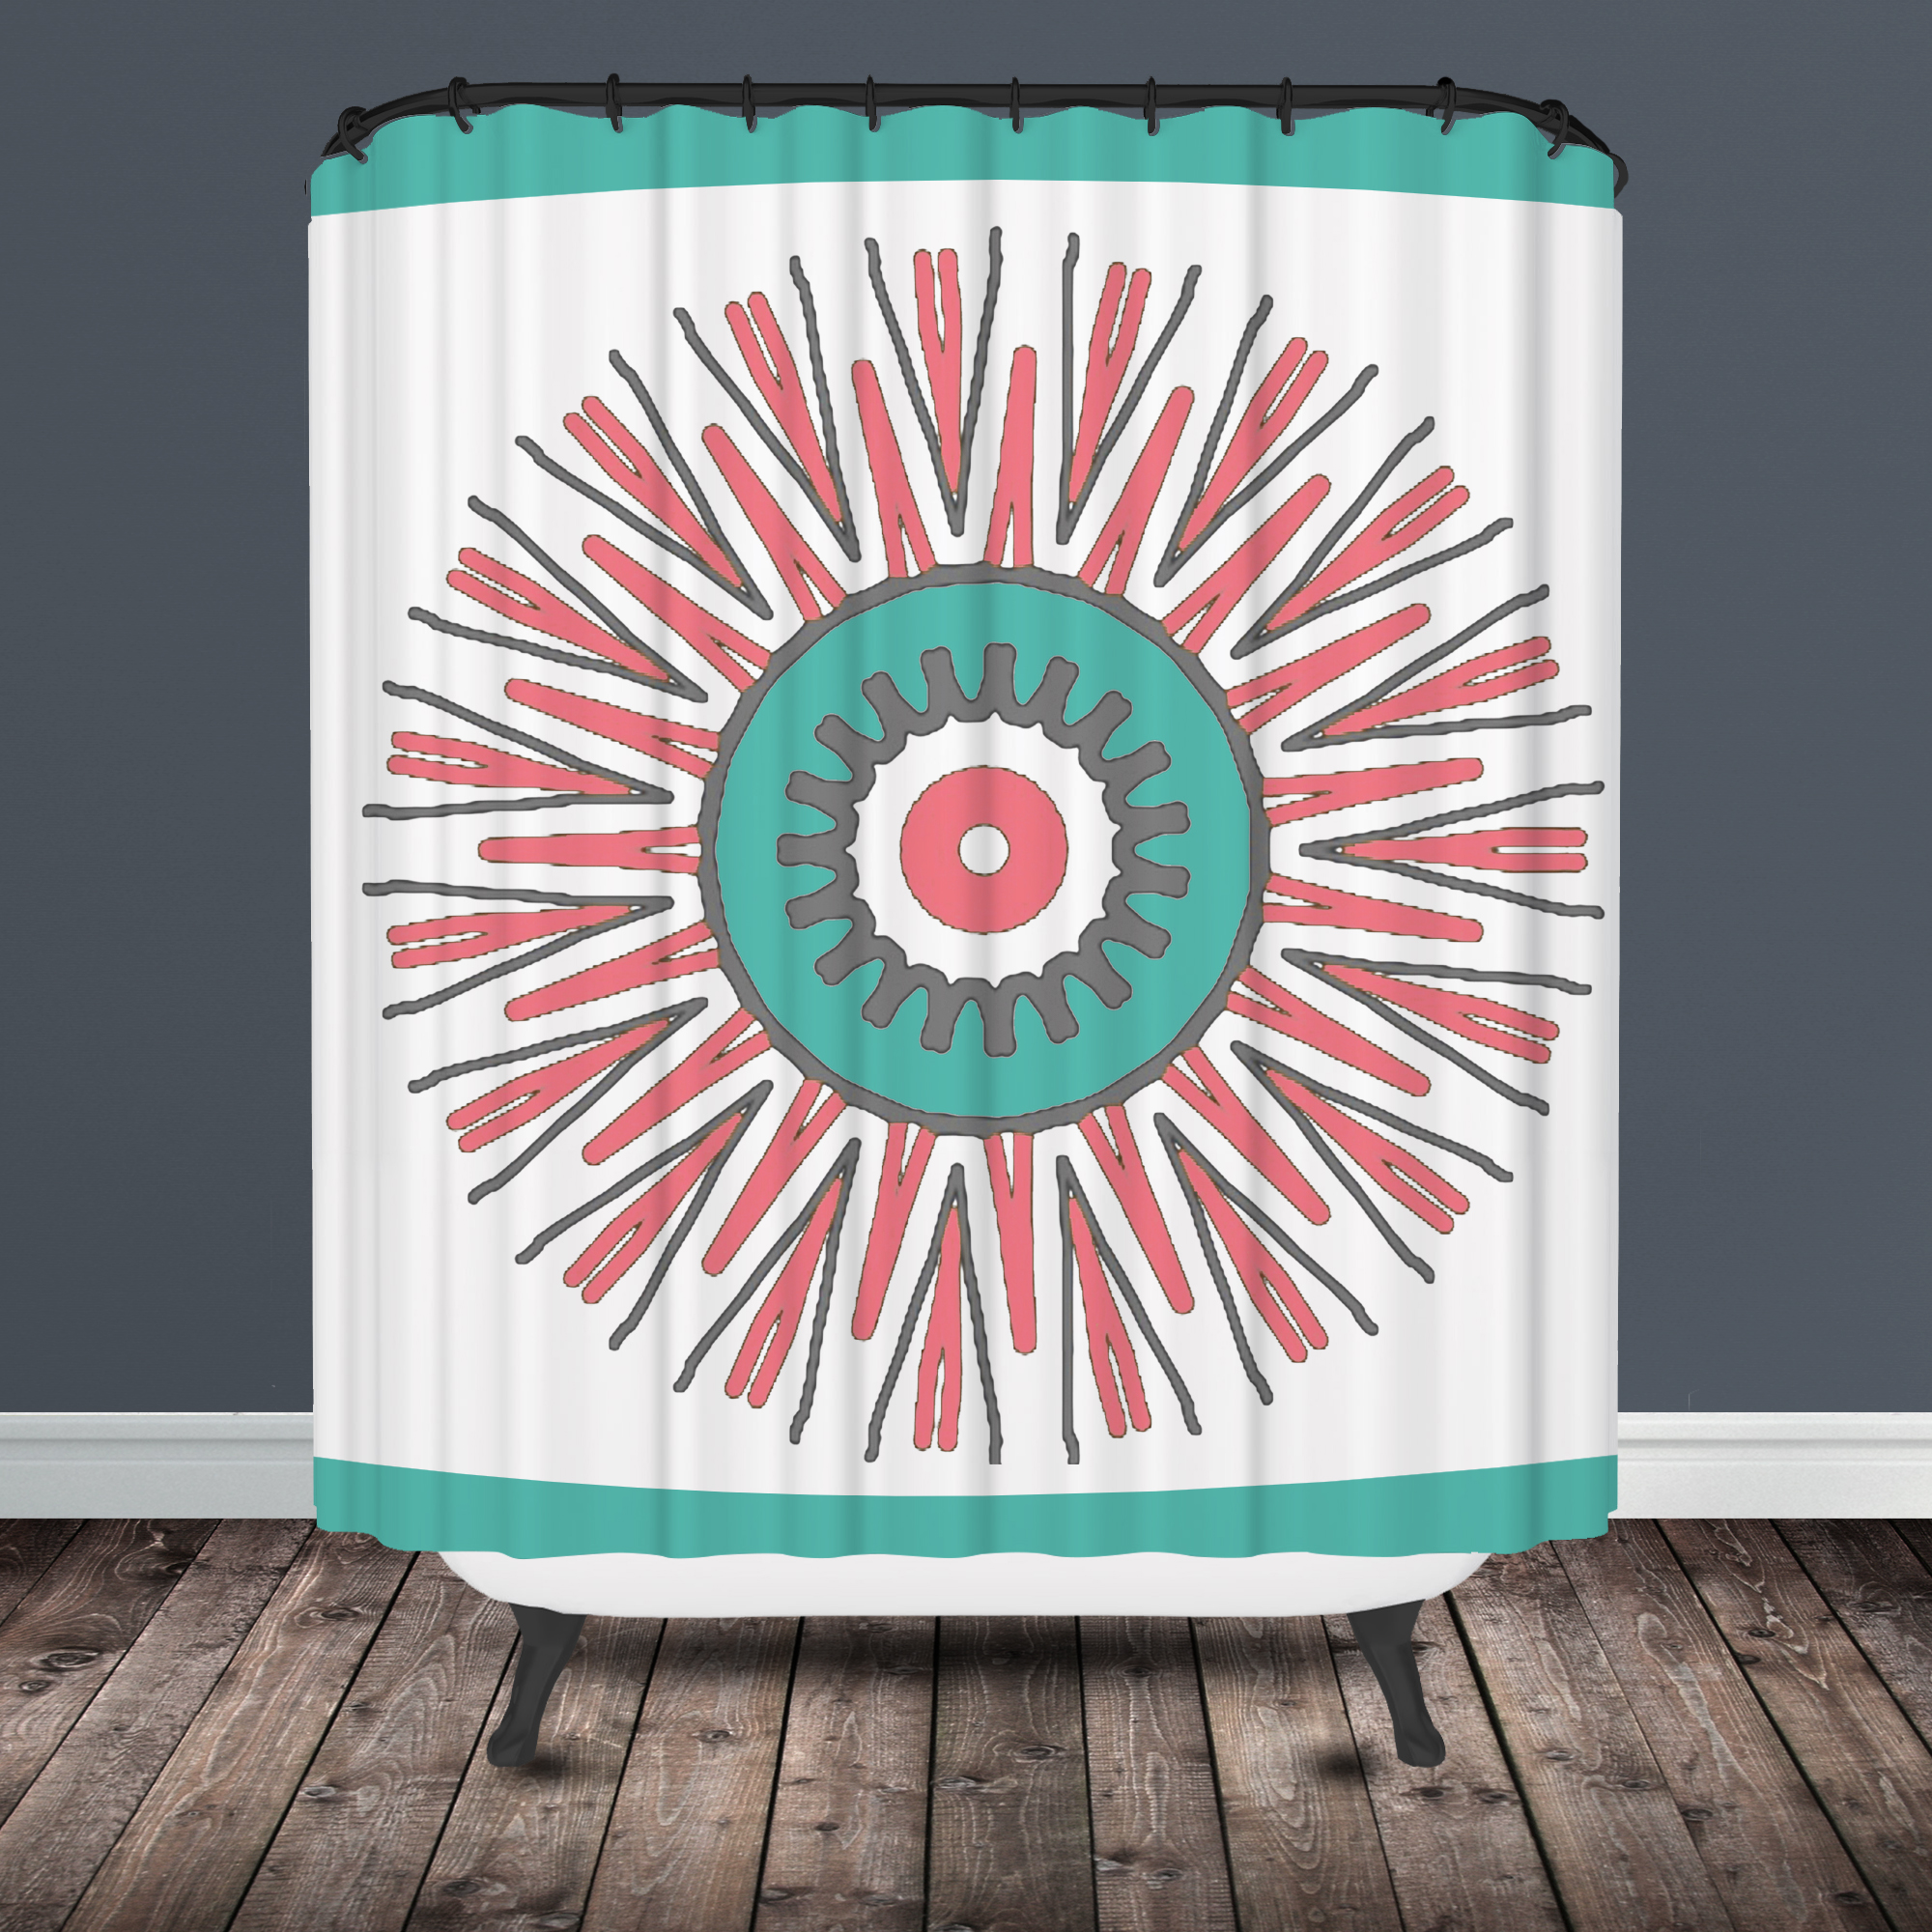 Turquoise And Coral Shower Curtain. Star Burst Tribal Shower Curtain